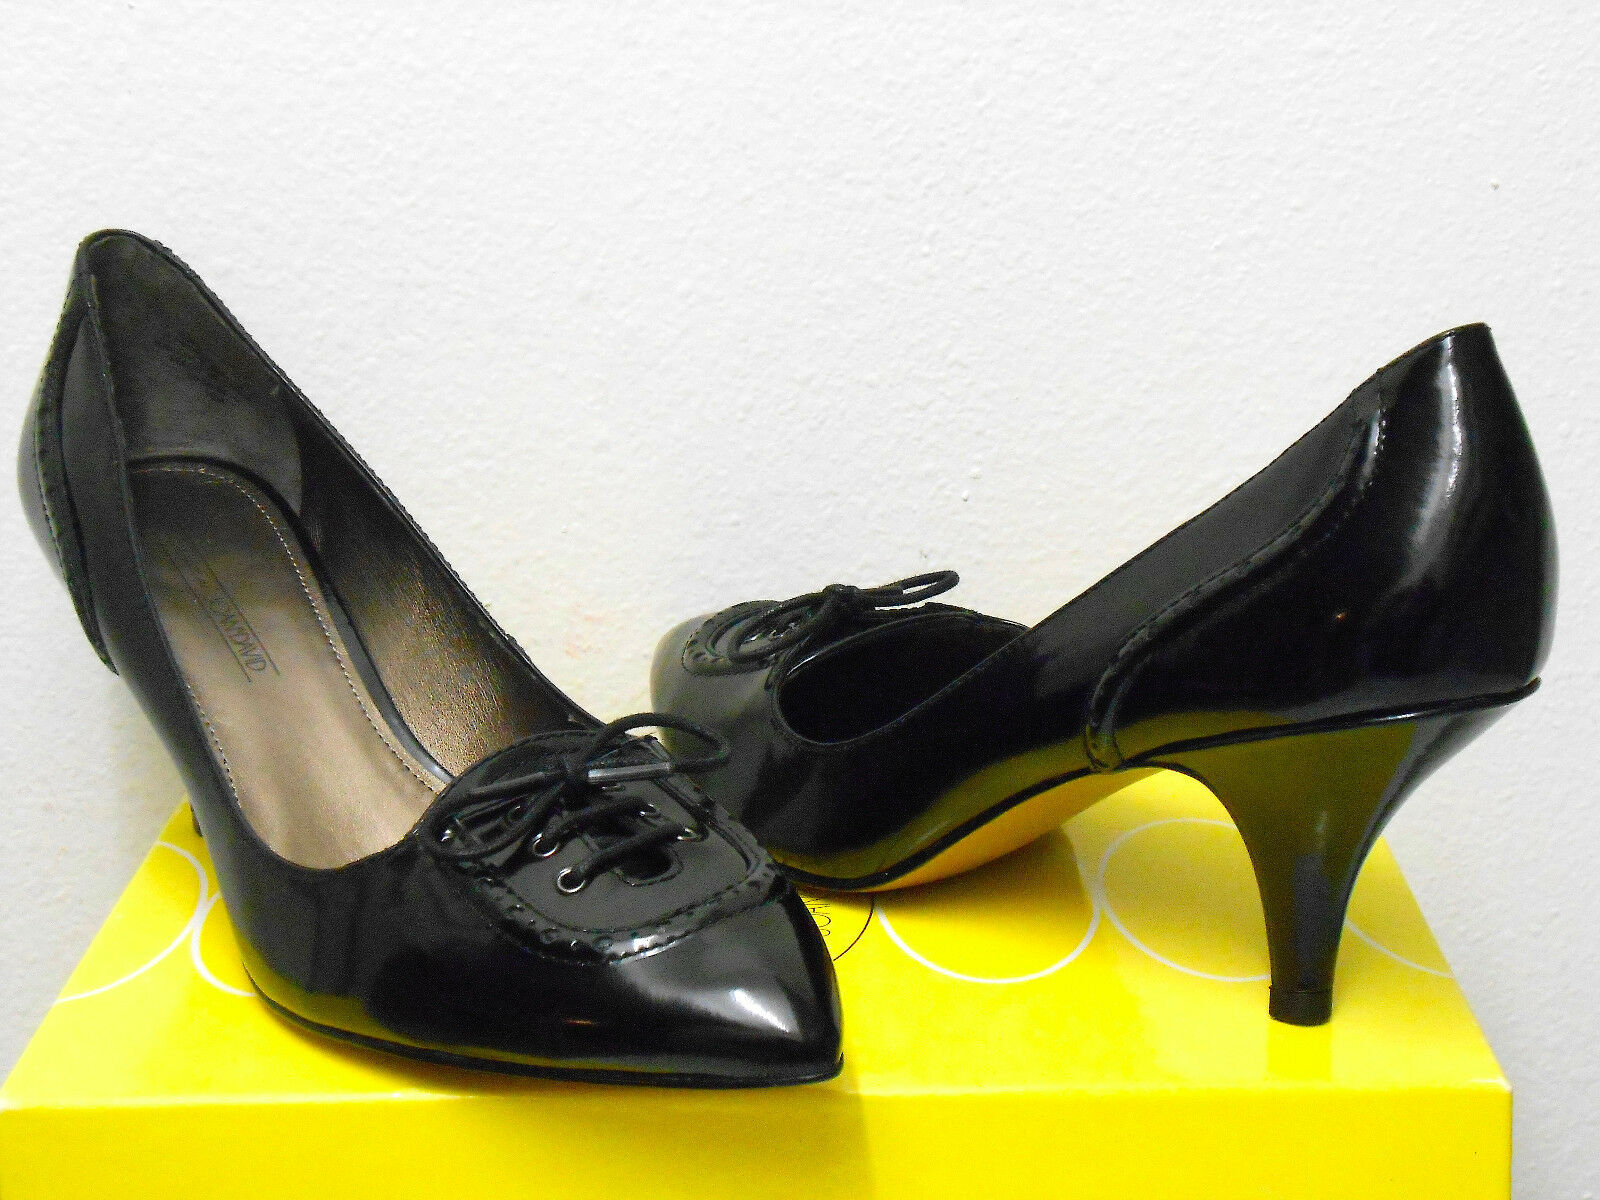 CIRCA JOAN & DAVID (AUSTERO schwarz LEATHER PUMP) damen Größe 6.5 BRAND NEW